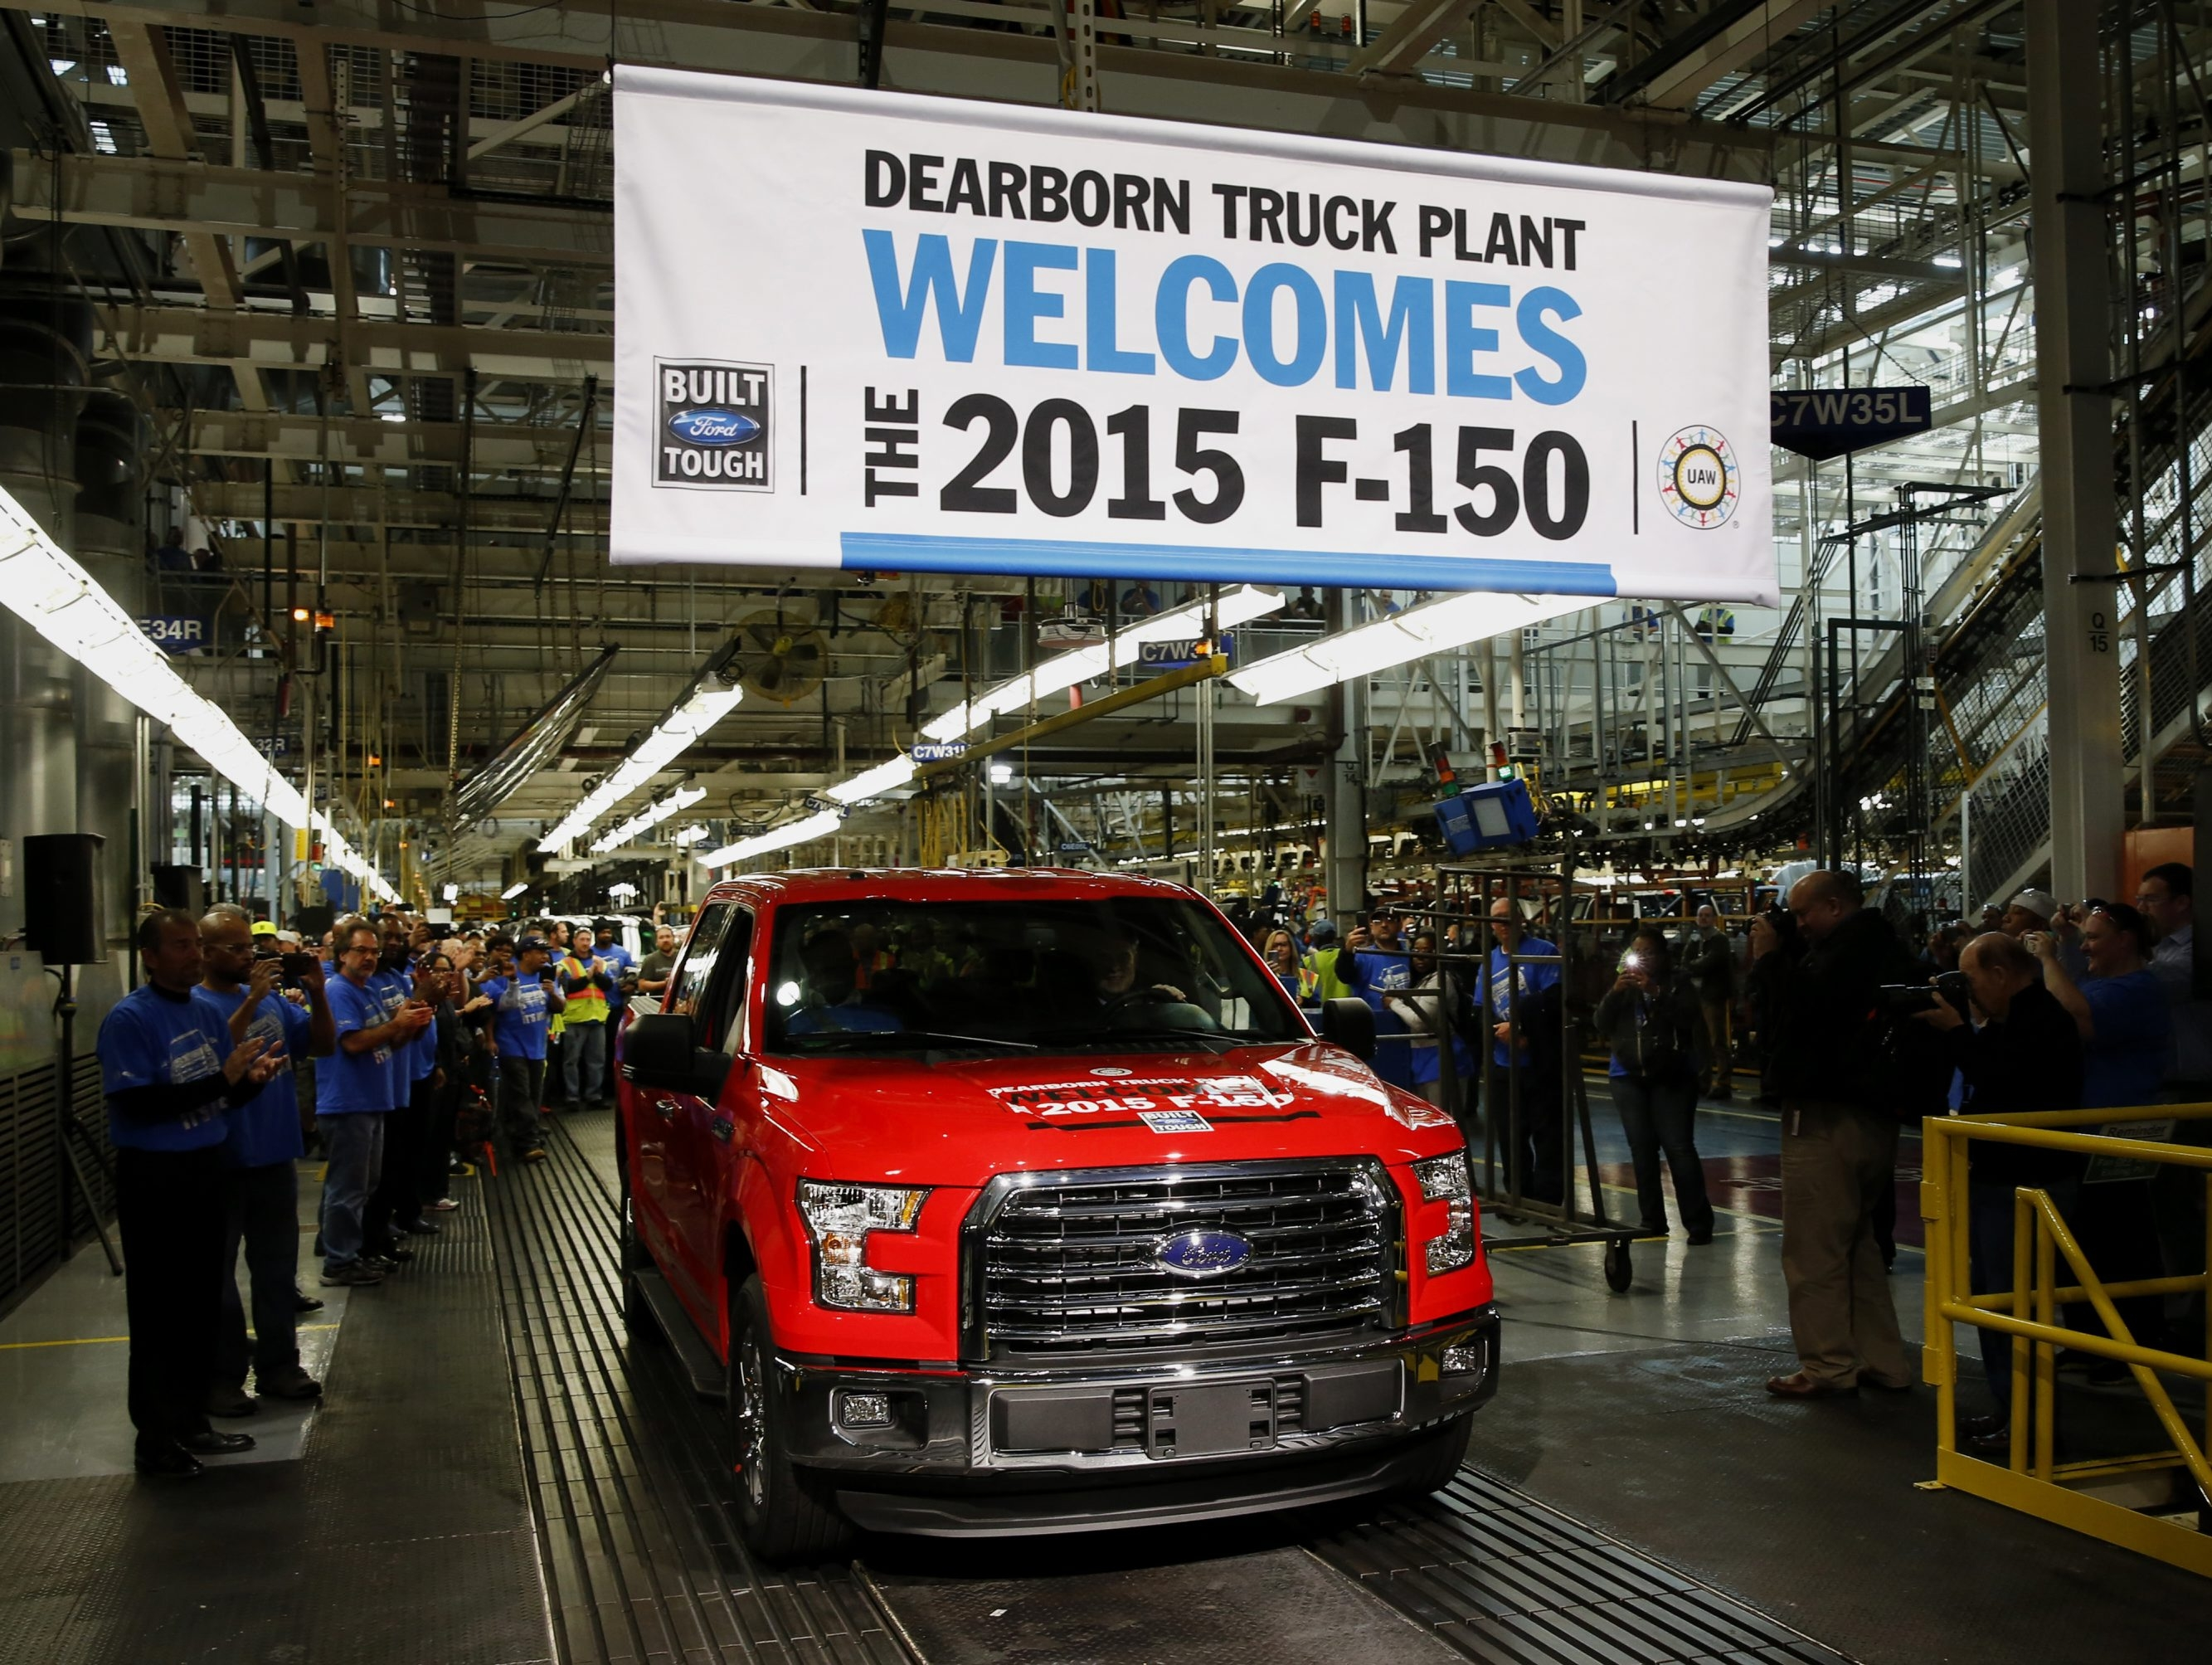 Employees cheer as the first 2015 Ford Motor Co. F-150 truck rolls off the production line during an event at the company's Dearborn truck assembly facility in Dearborn, Mich., in November.